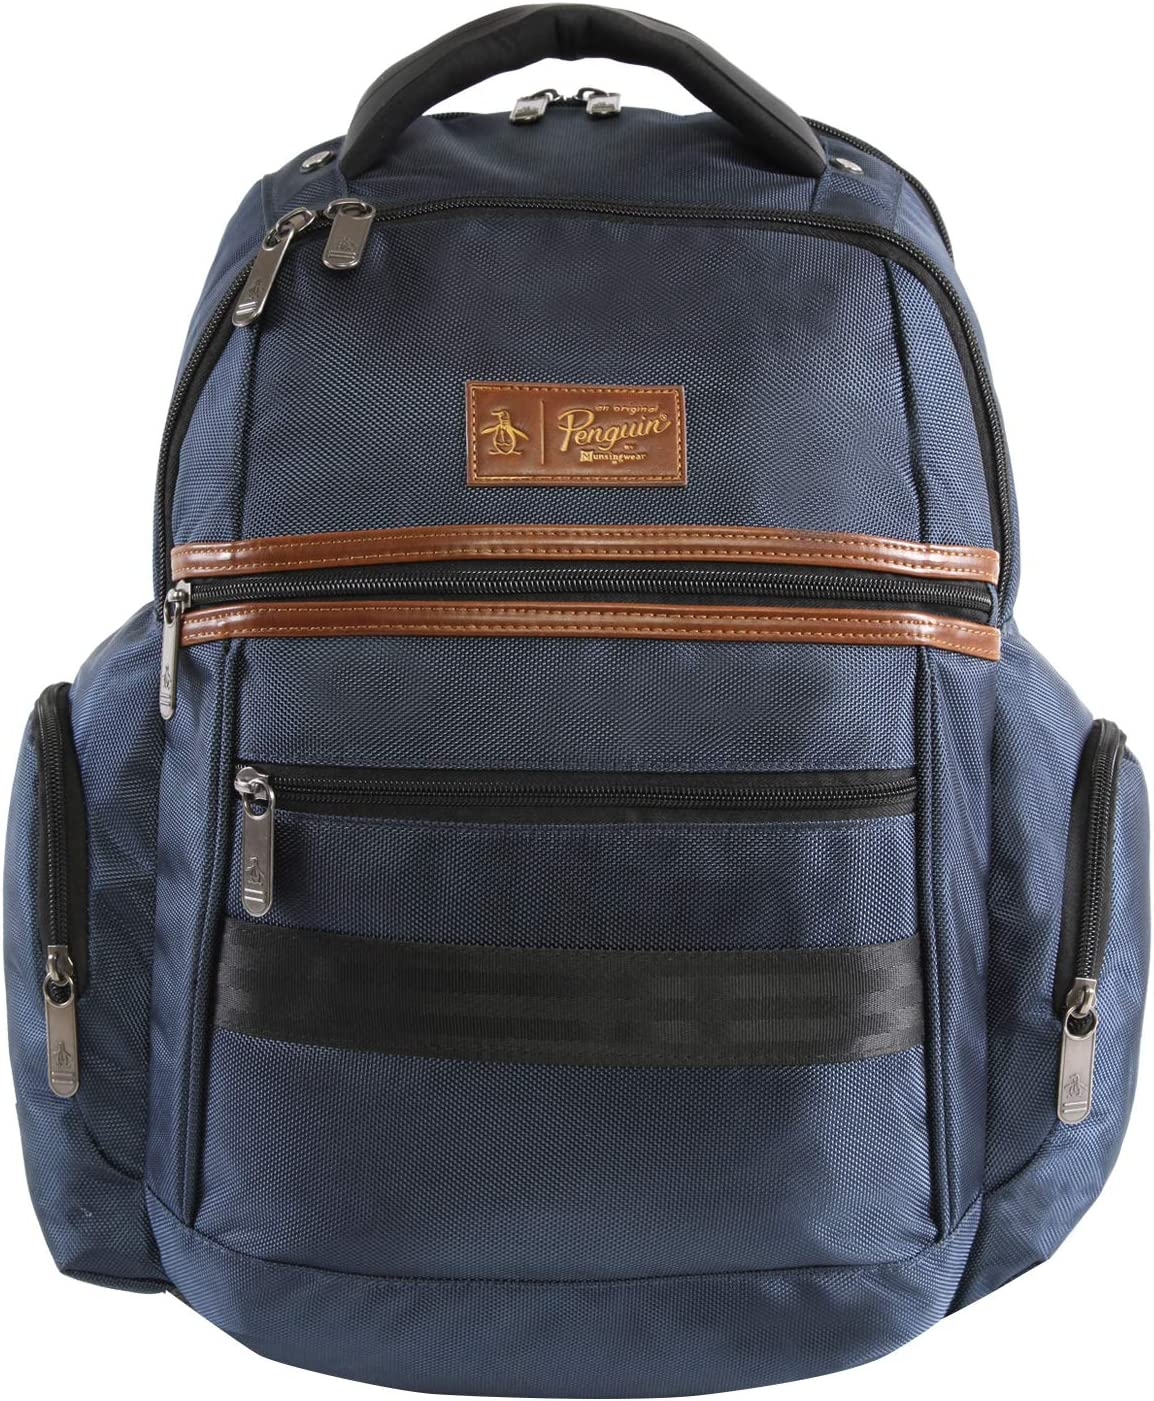 ORIGINAL PENGUIN Classics Backpack Fits Most 15-inch Laptop and Notebook, Navy, One Size